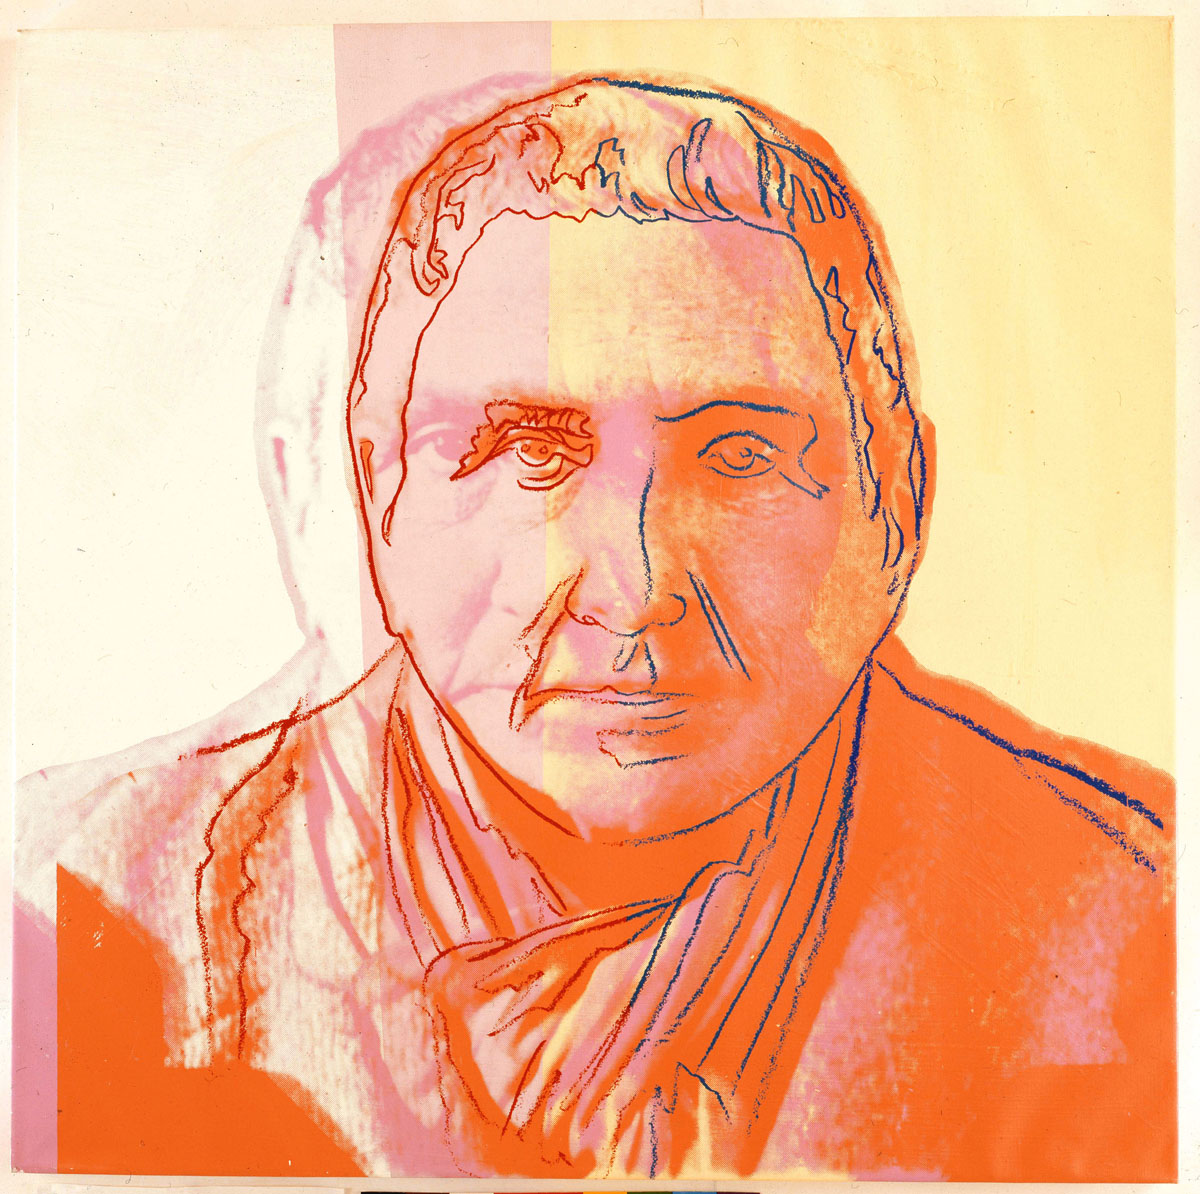 "Gertrude Stein (1980) acrylic and ink on canvas by Andy Warhol ""Ten Portraits of Jews of the Twentieth Century"" Jewish Museum, New York"